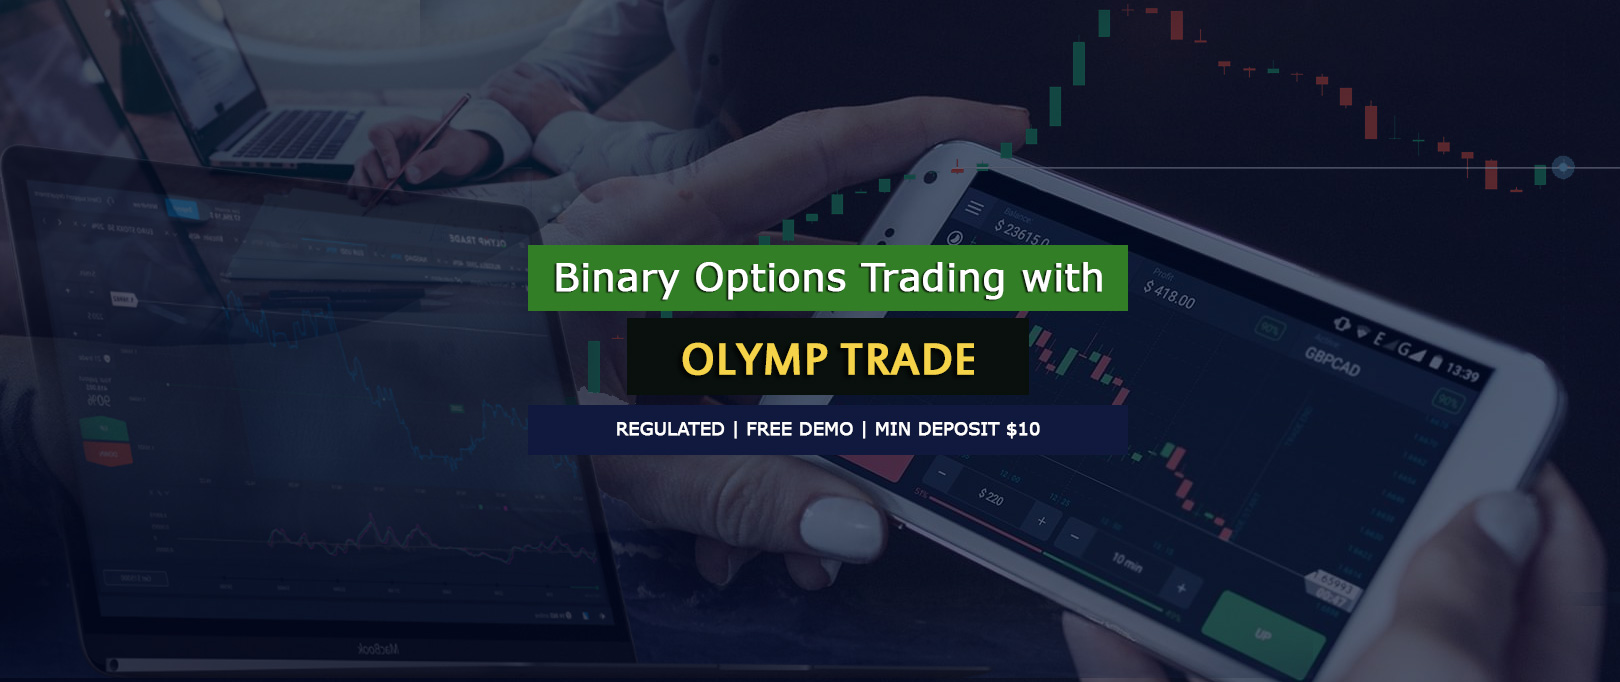 Regulated binary options online trading